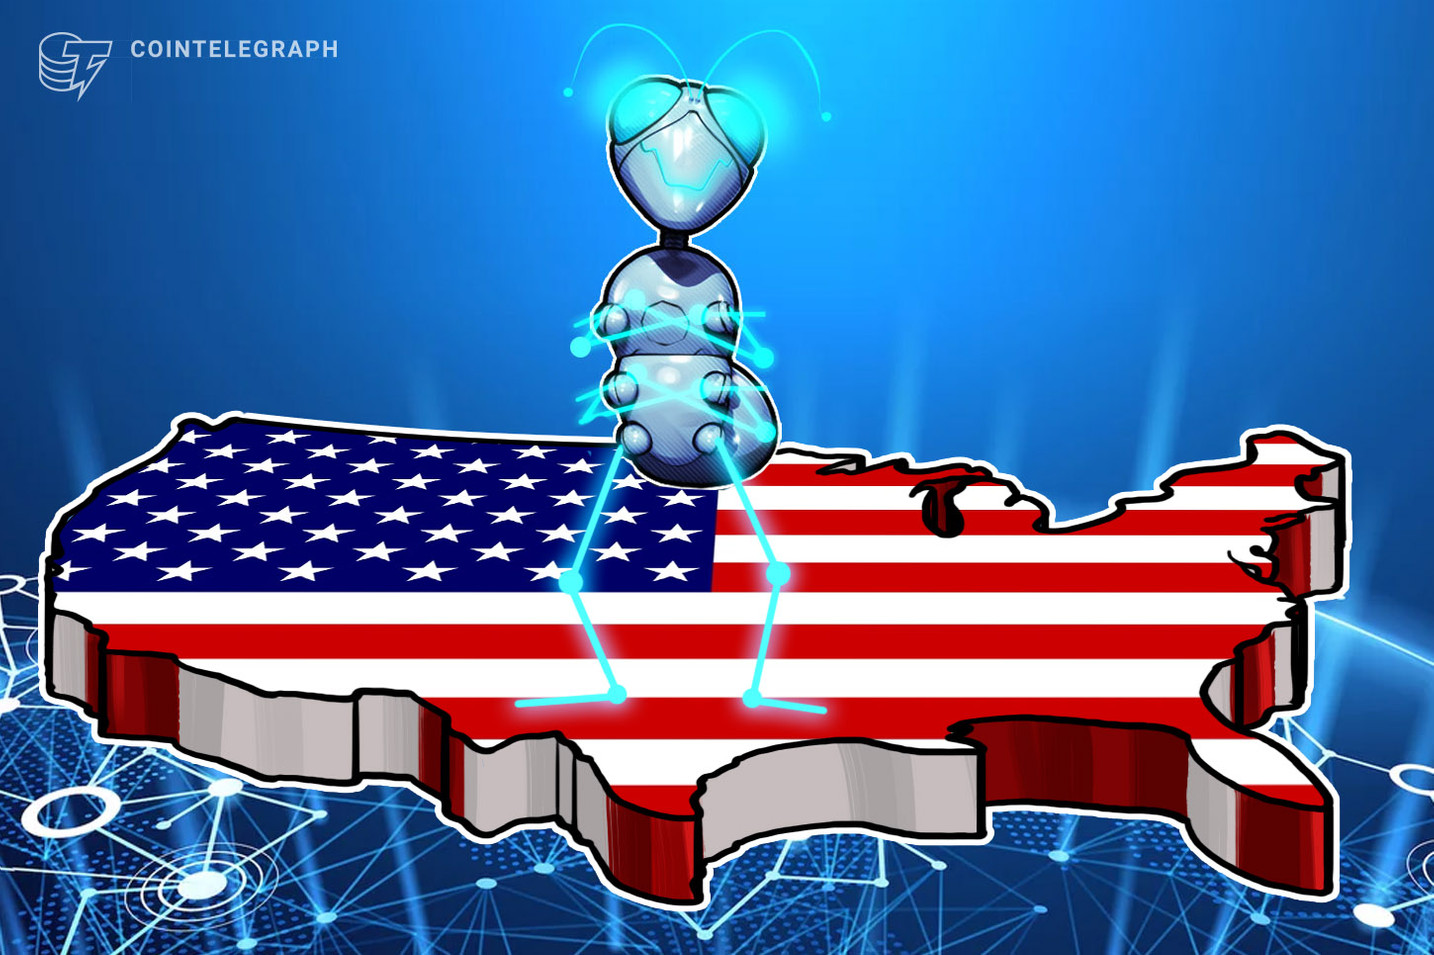 US Gov't Blockchain Spending Expected to Increase 1,000% Between 2017-2022: Study